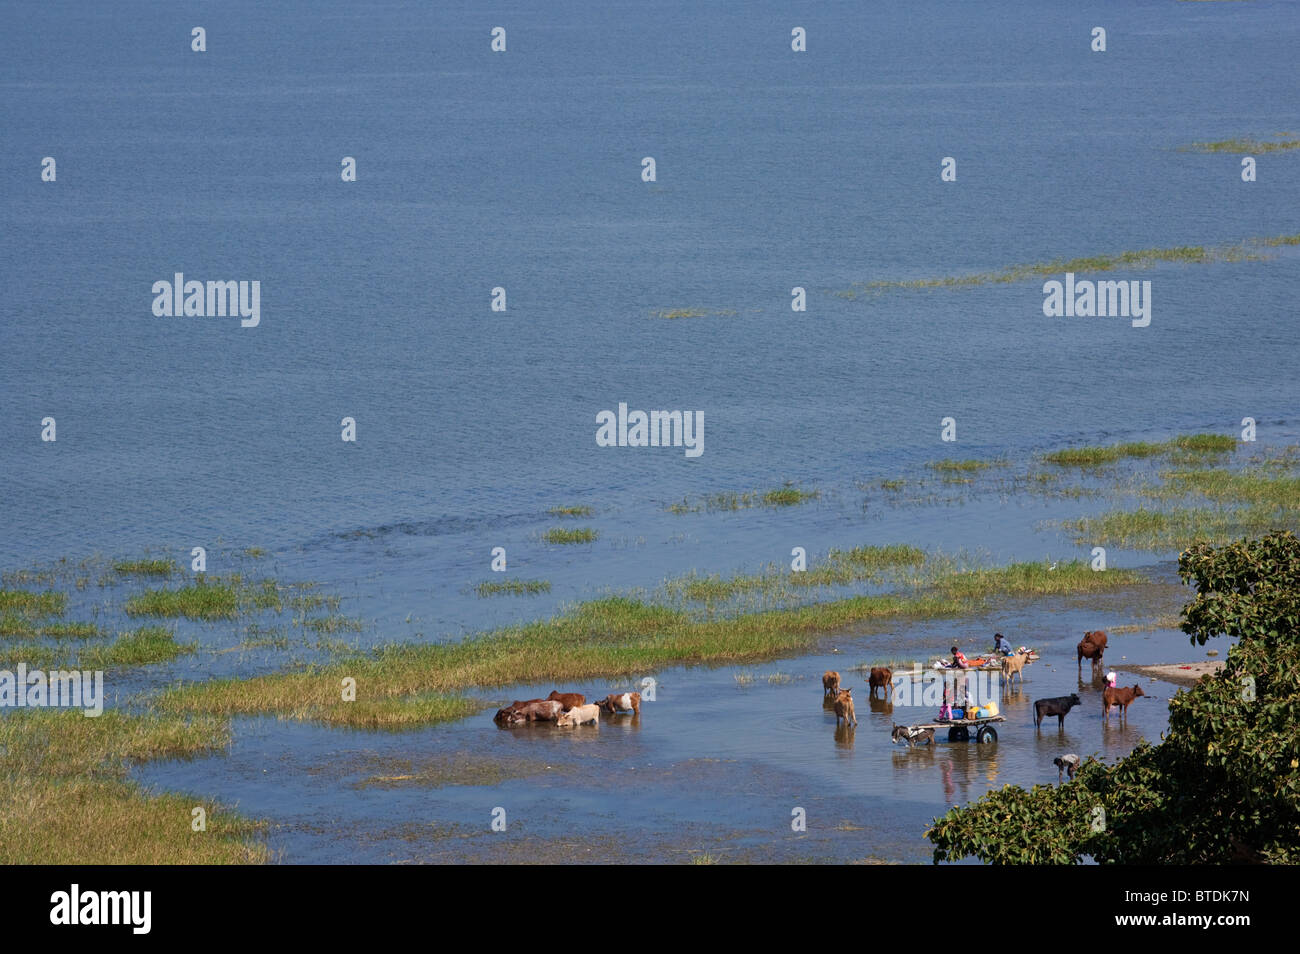 Locals watering cattle in the shallows of Lake Awassa Stock Photo